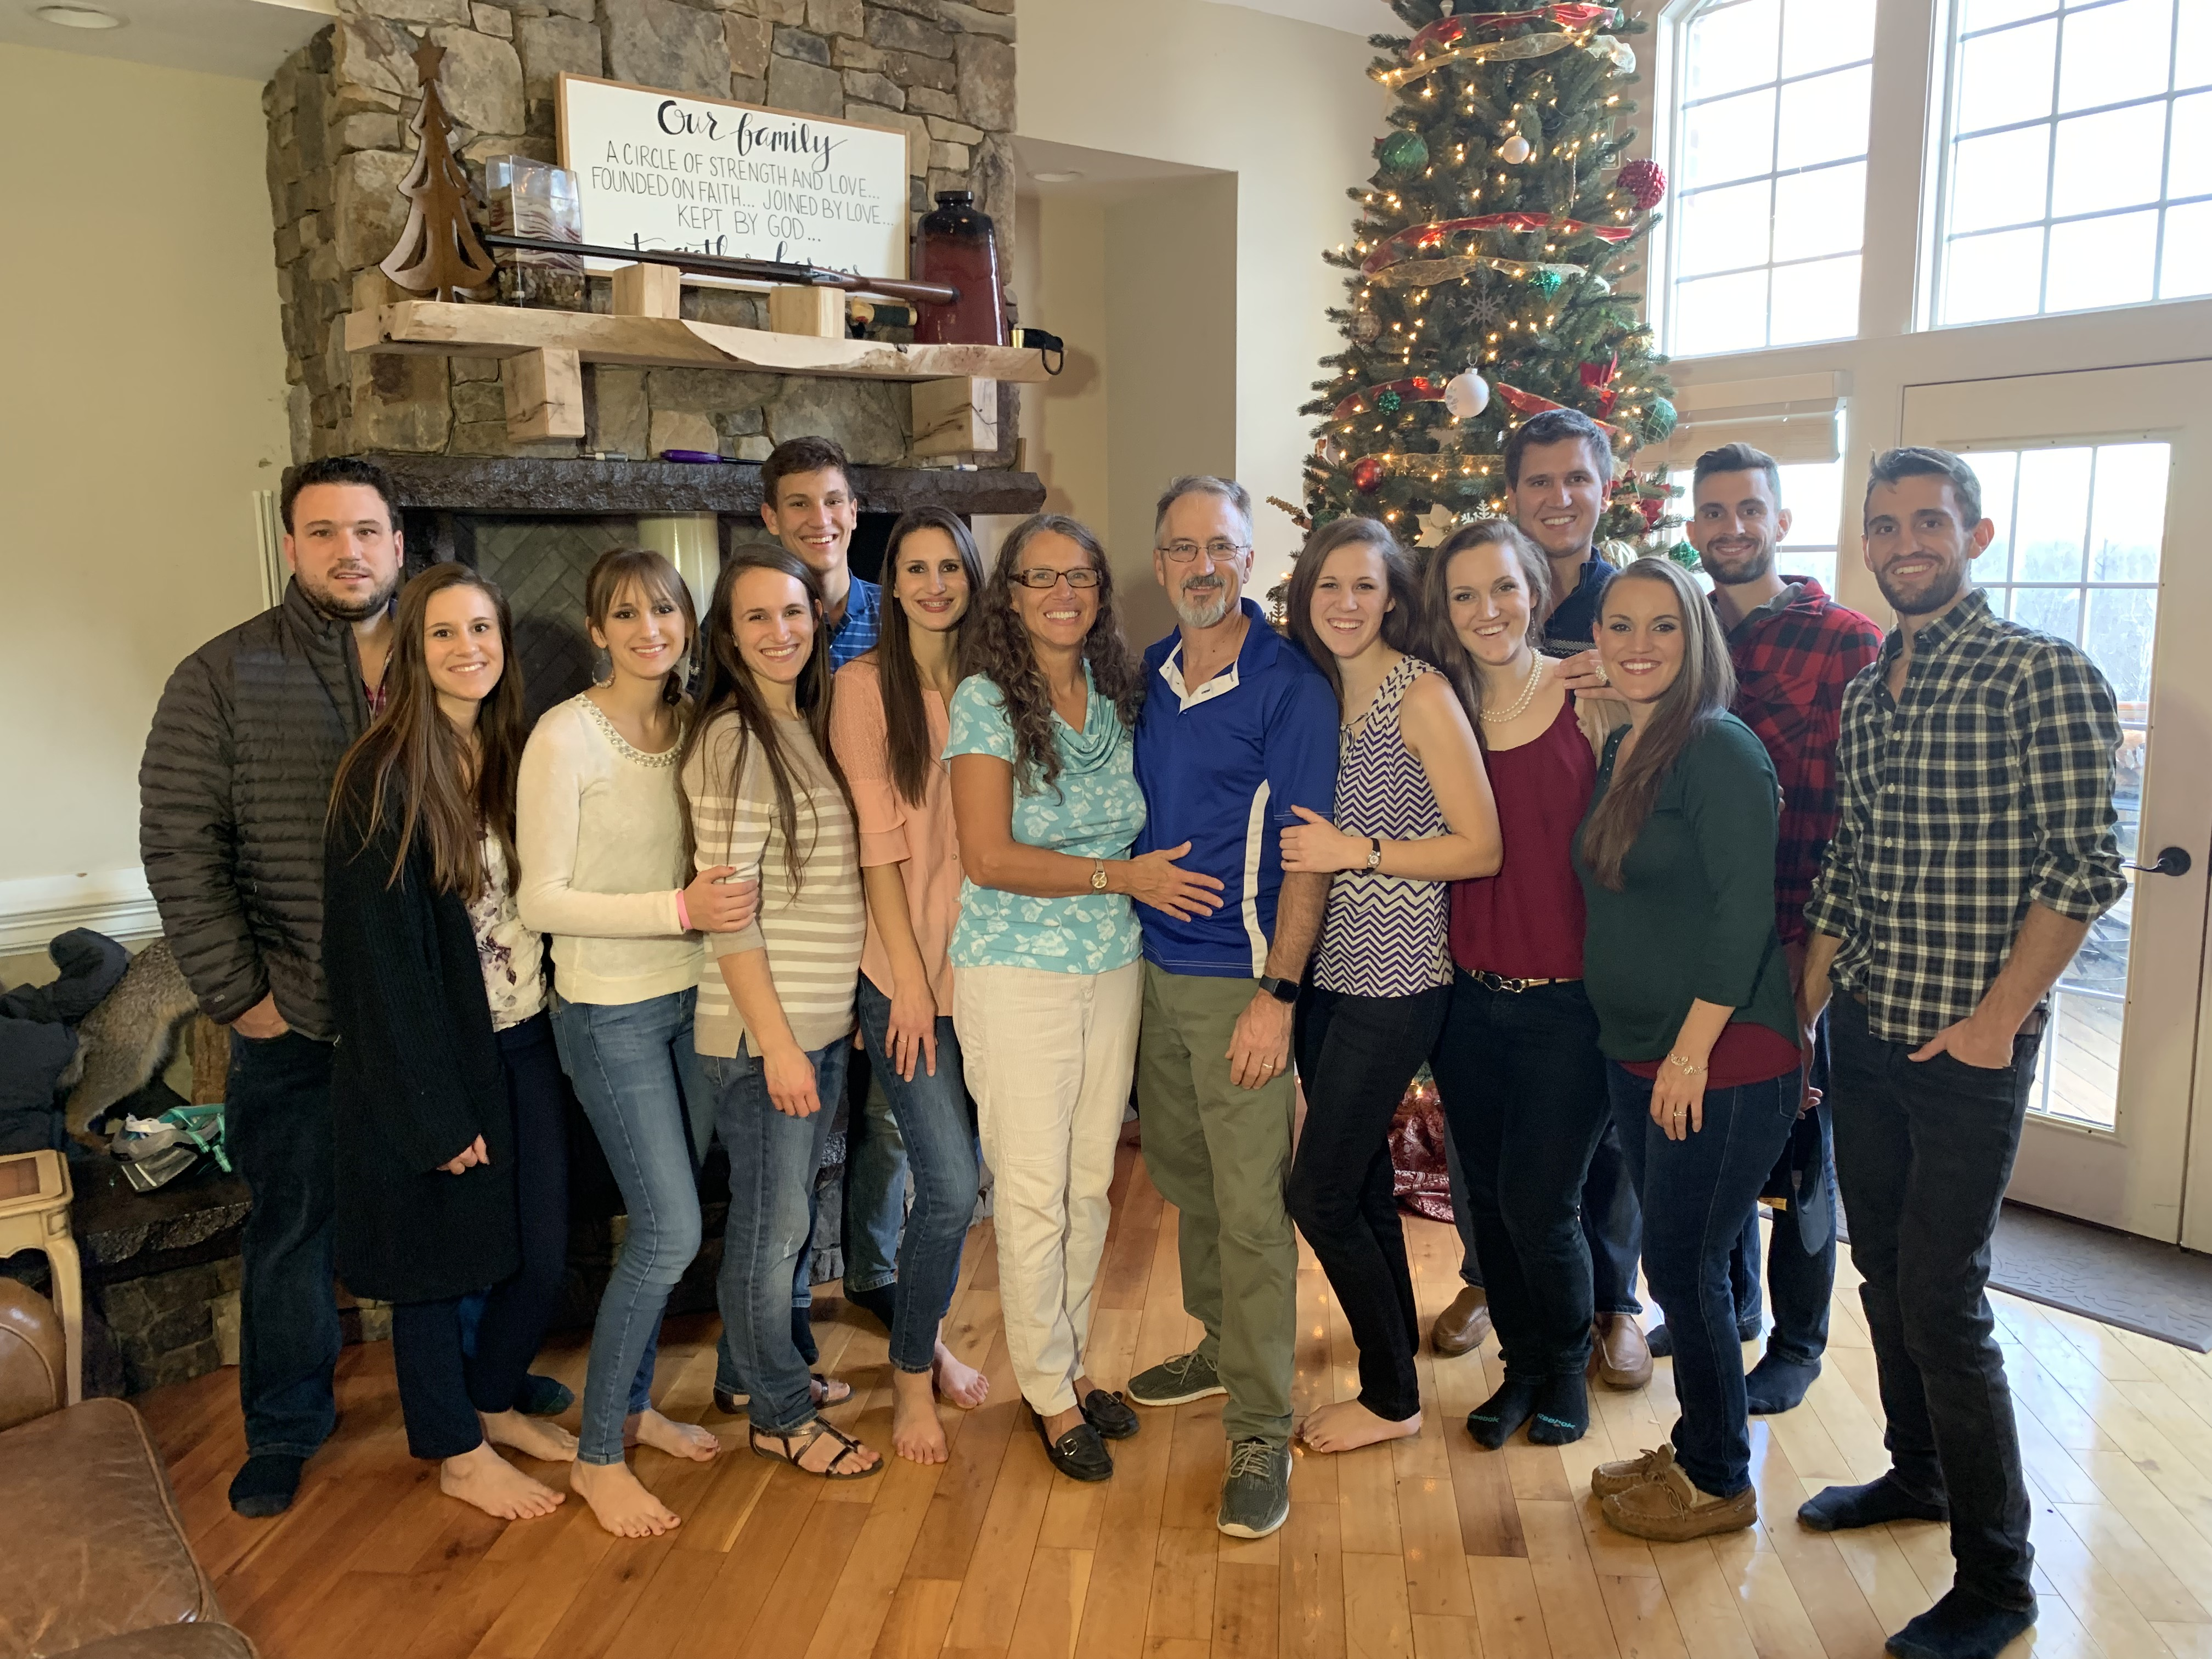 All 12 Kids together during Christmas Holidays